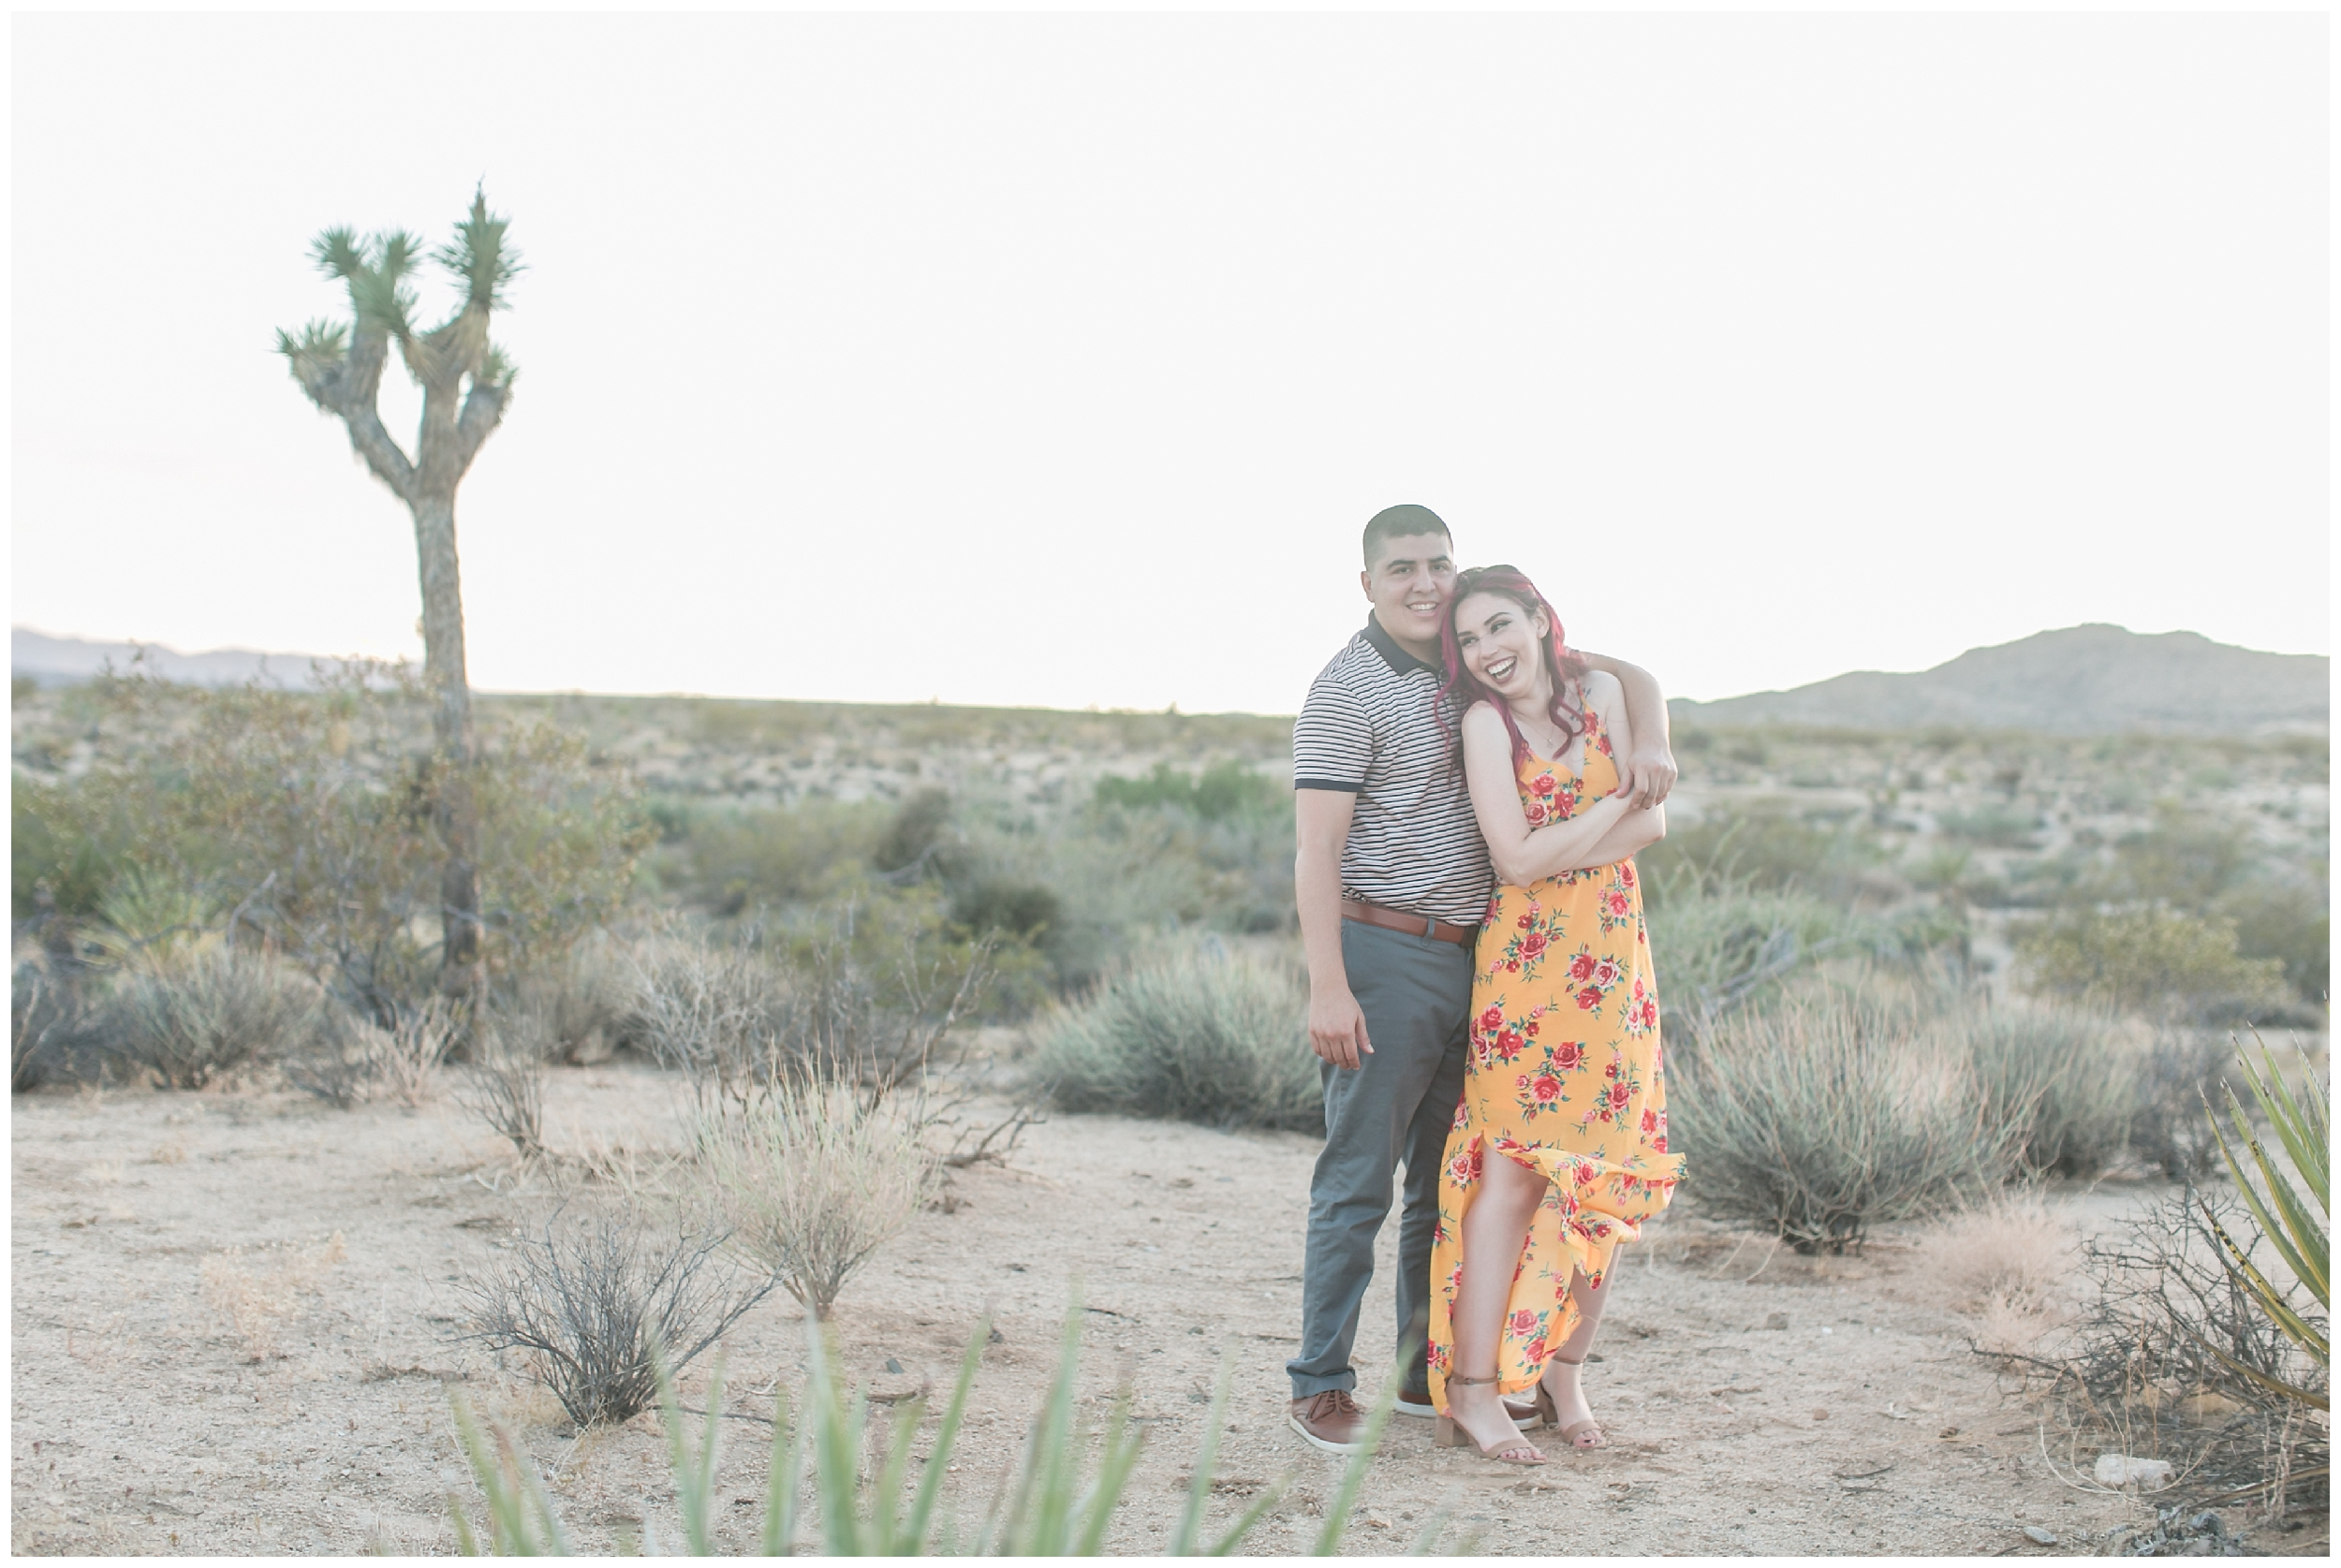 Desert Engagement Session Palm Spring wedding photographer carrie vines